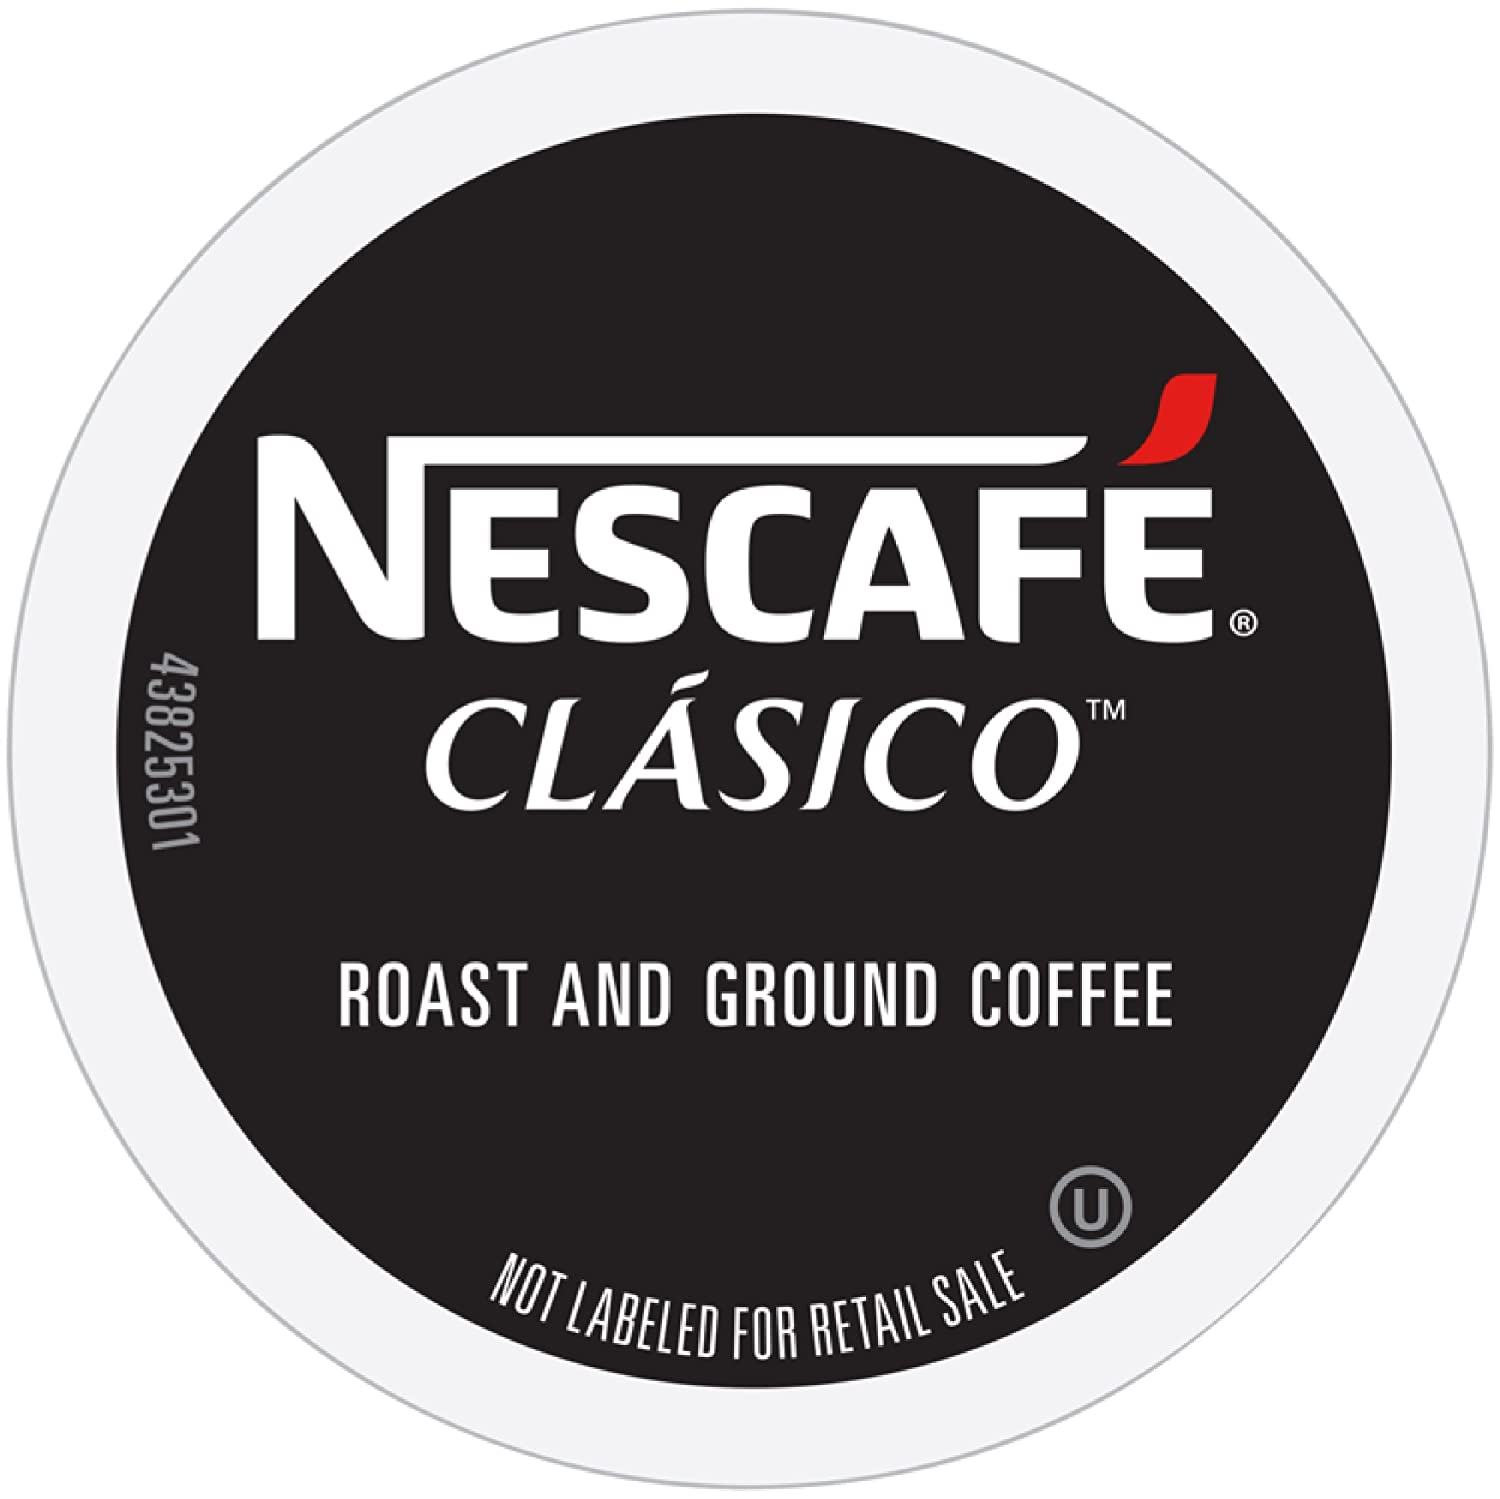 Amazon.com : Nescafé Clásico Dark Roast Ground Coffee Pods - Bold, Flavorful Single Serve Dark Roast Coffee Made with 100% Arabica Beans, Compatible with ...